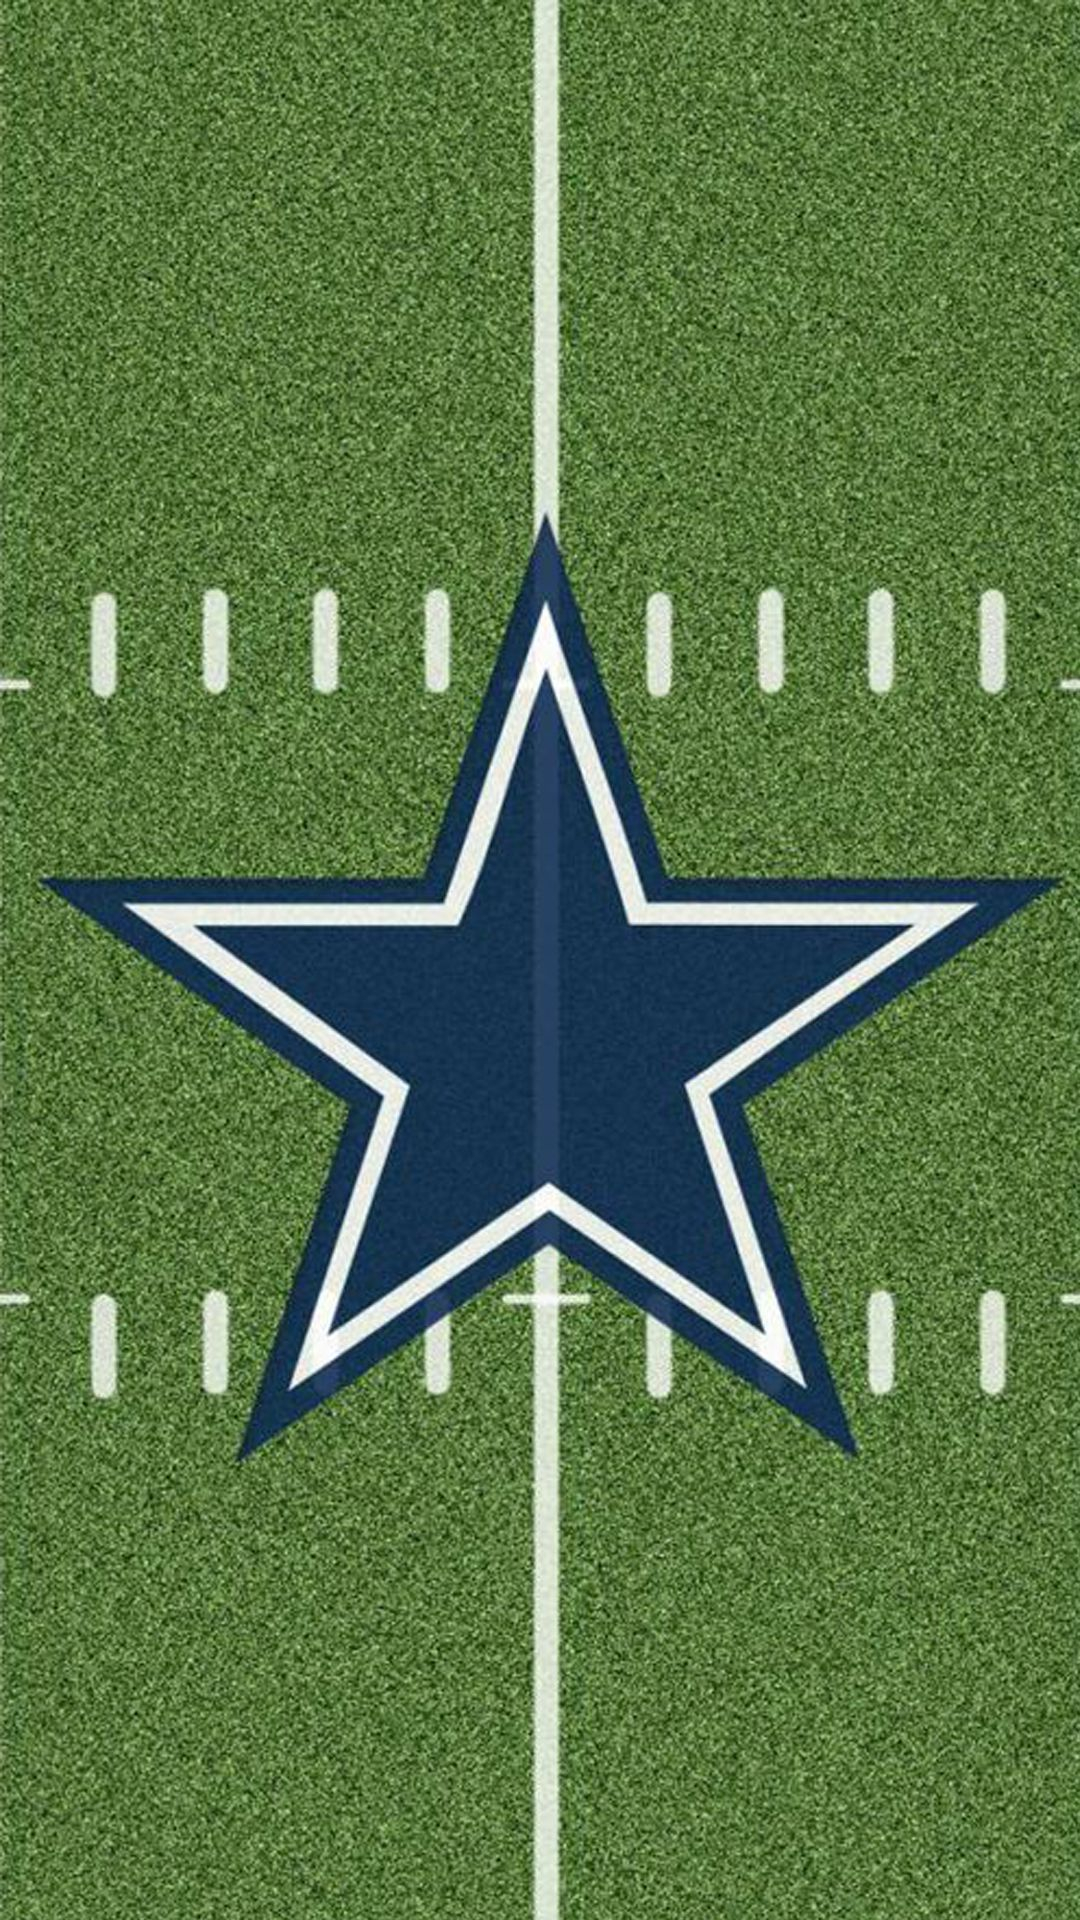 Dallas Cowboys Wallpaper For Cell Phones with Logo HD Wallpapers Wallpapers Download